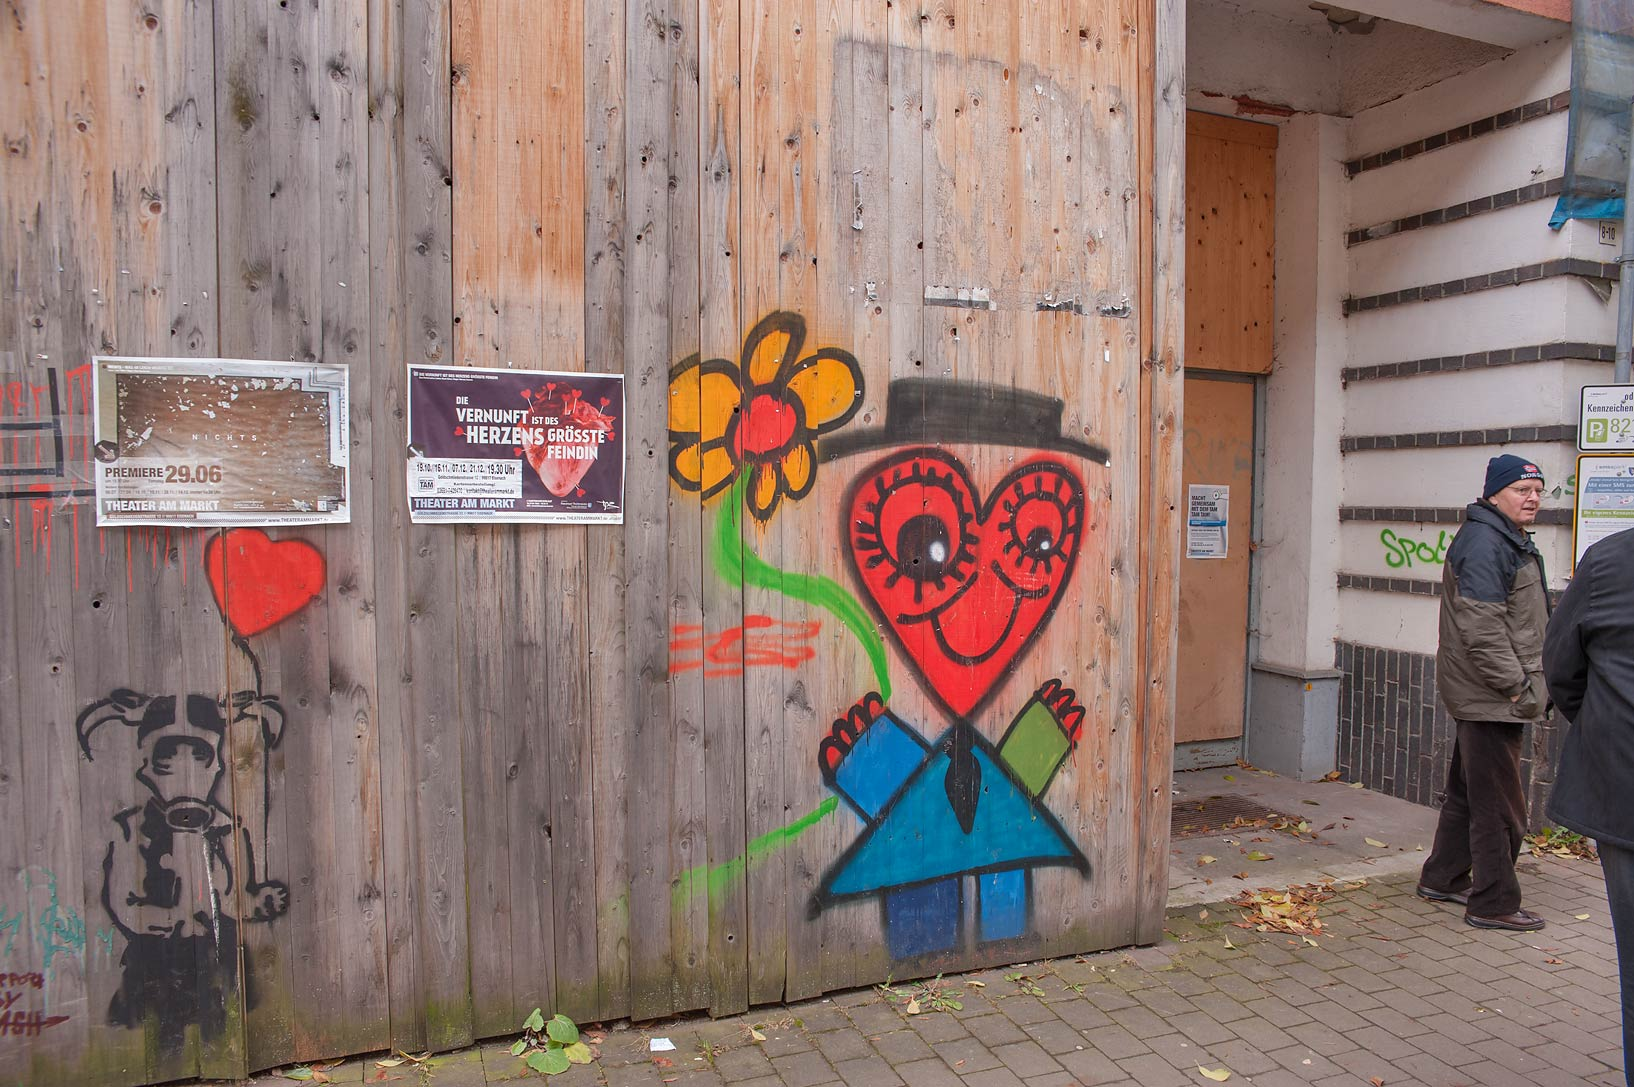 Graffiti on a street. Eisenach, Germany